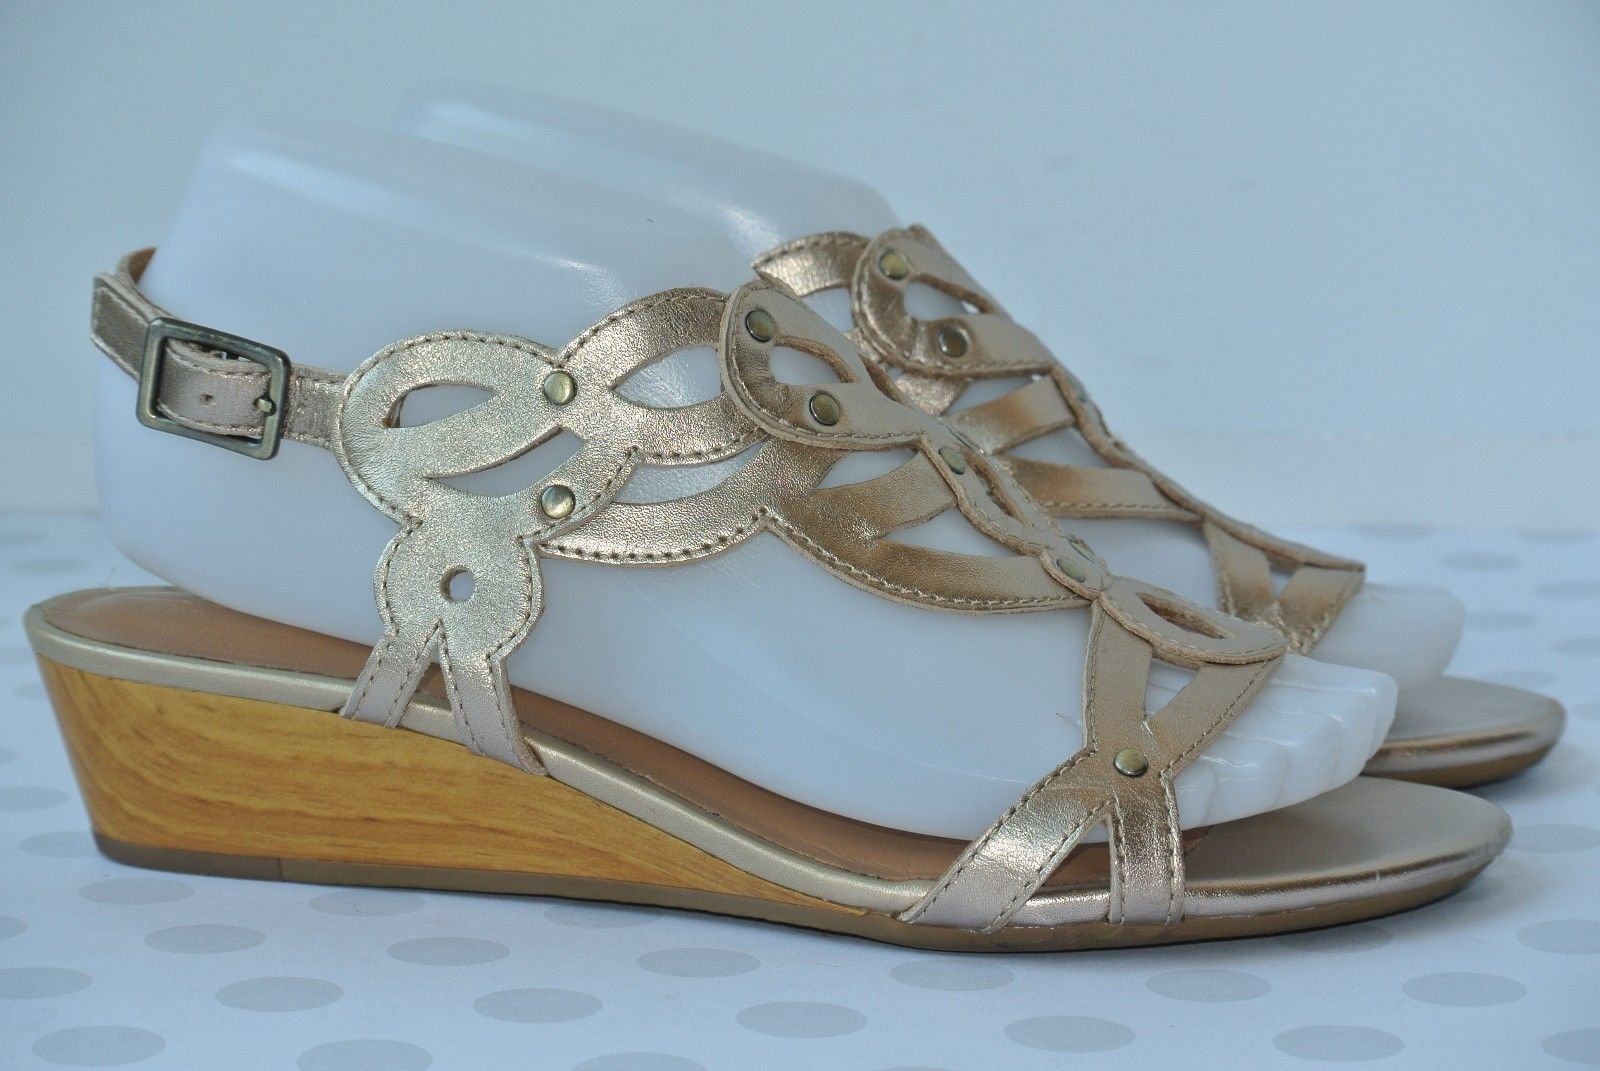 fc4b22d849c Clarks Playful Tunes Womens 7.5 M Gold Leather Studded Scroll Wedge Sandals